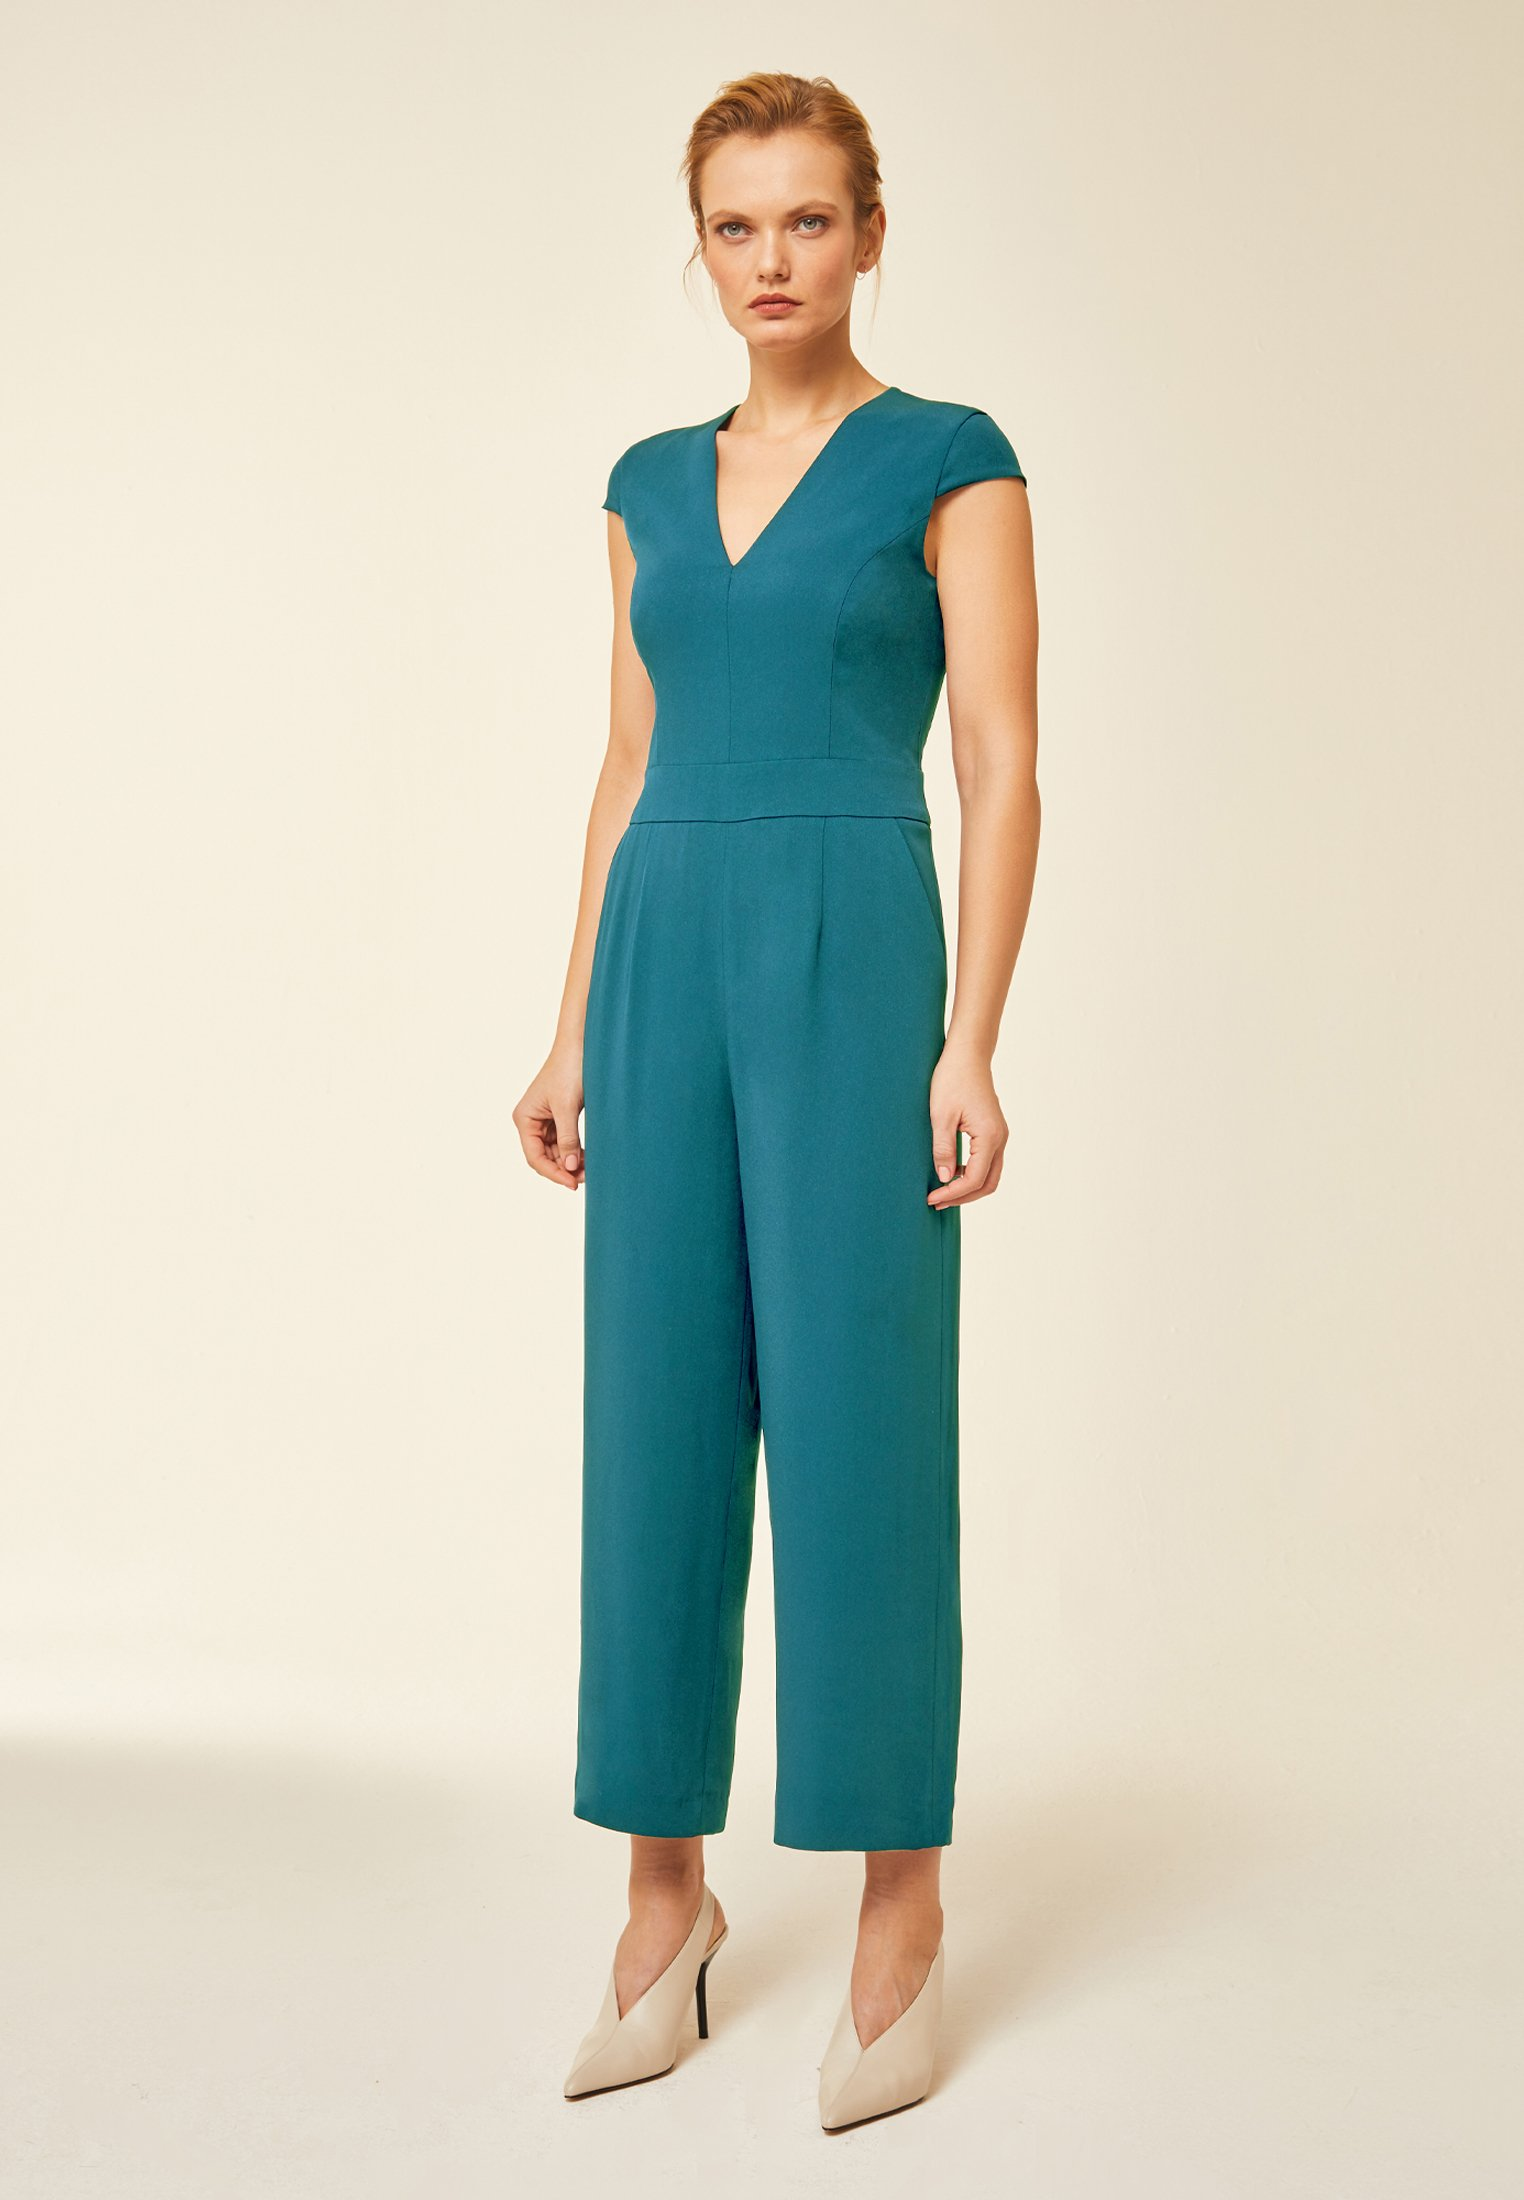 2020 New Women's Clothing IVY & OAK MIT WEITEM BEIN Jumpsuit capri FsQcaZePC